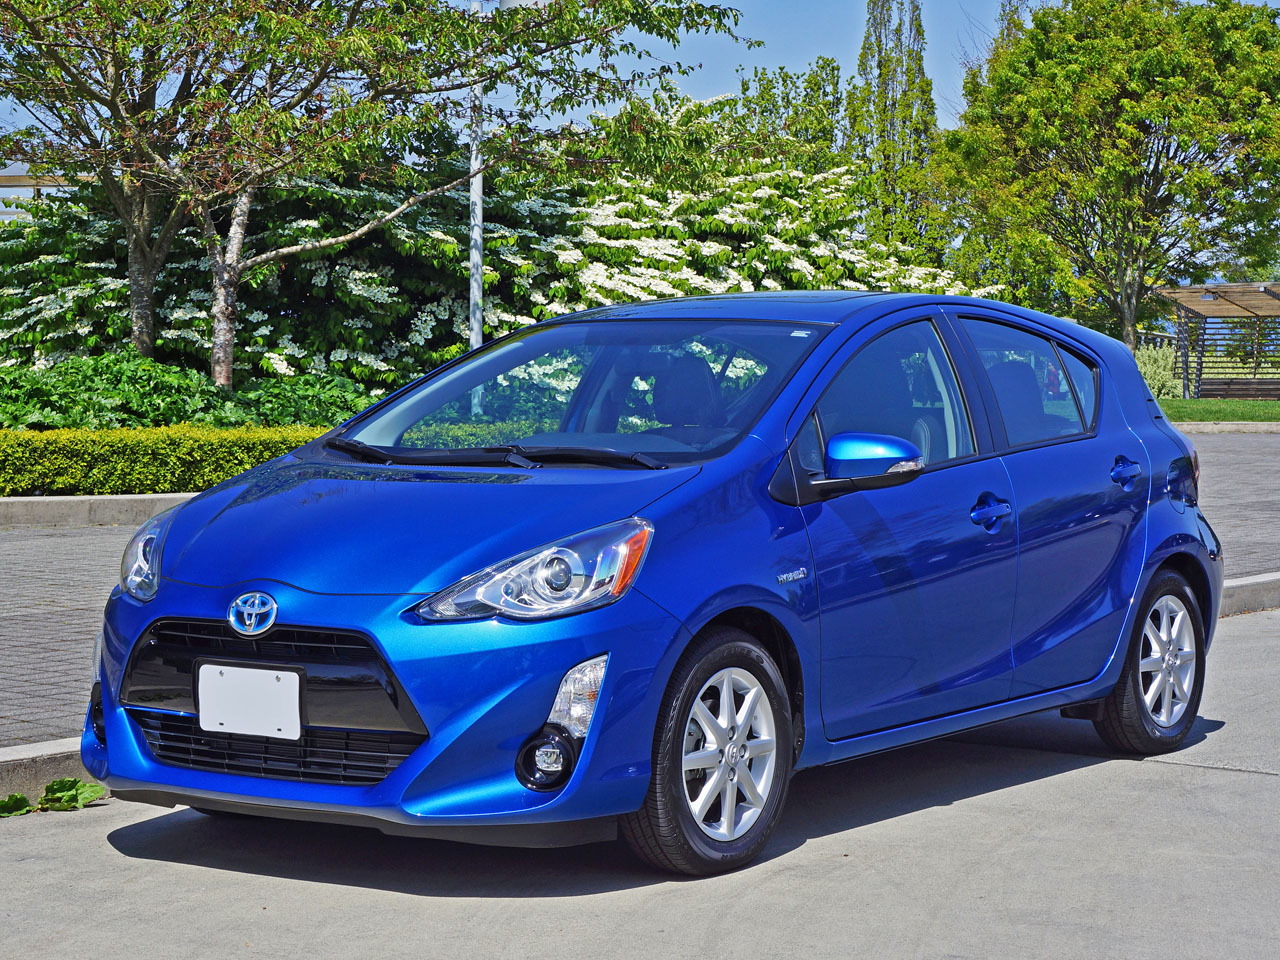 2017 Toyota Prius C Technology Road Test Review